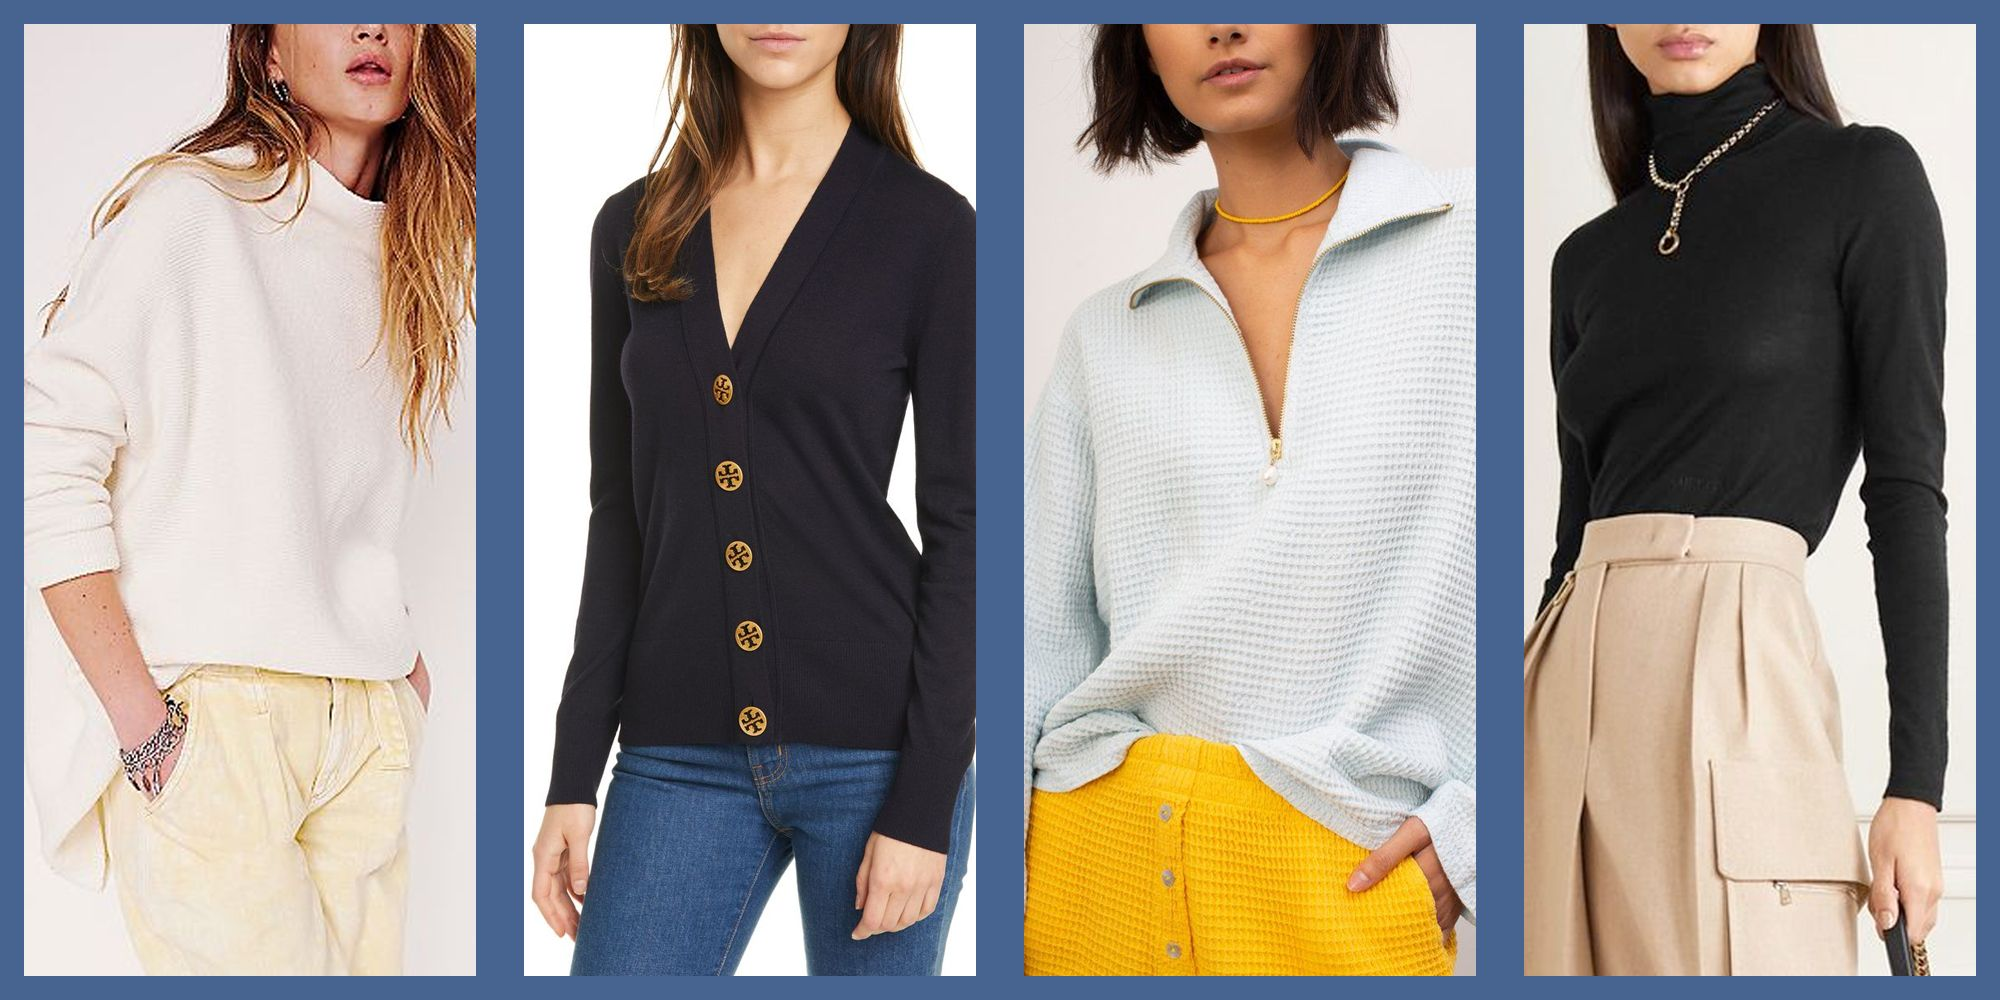 20 Cute Fall Sweaters to Buy Best Cozy Sweaters for Fall 2020